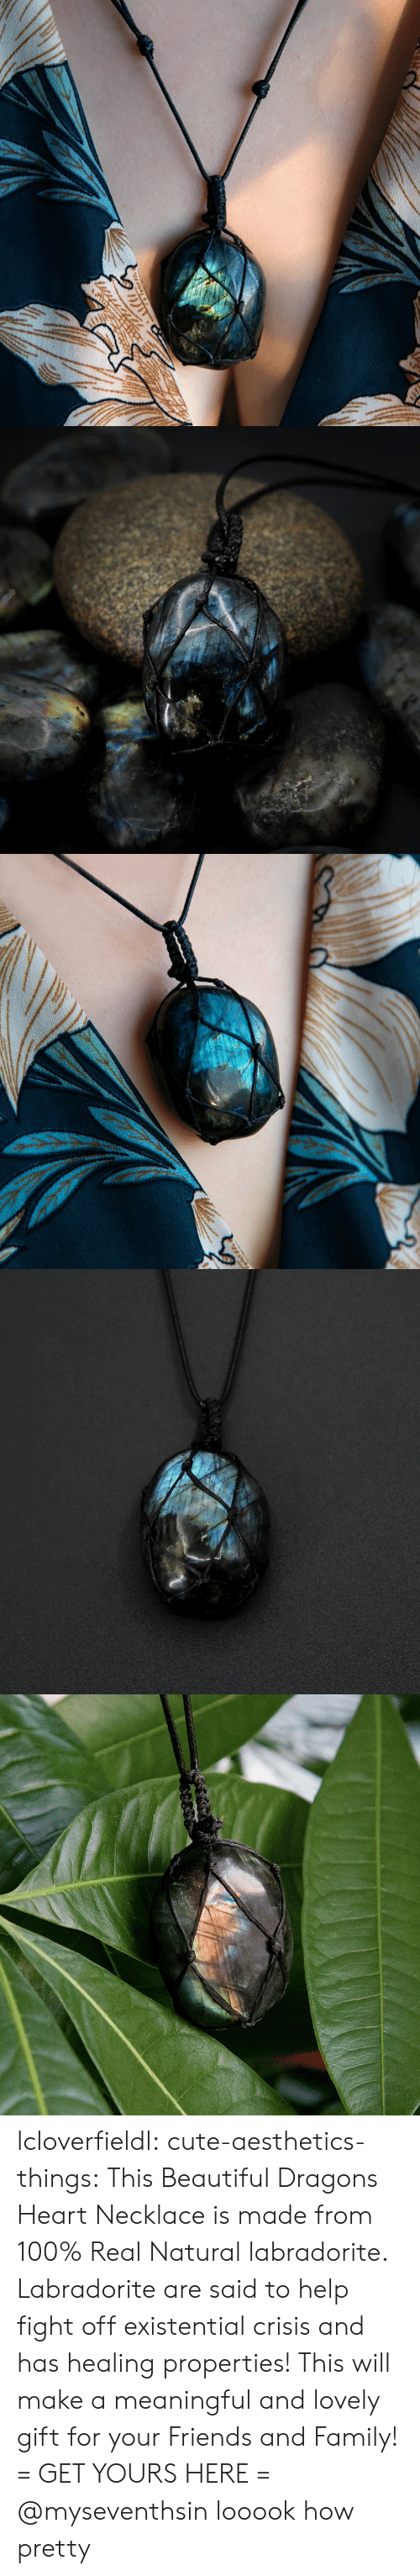 Anaconda, Beautiful, and Cute: lcloverfieldl: cute-aesthetics-things:  This Beautiful Dragons Heart Necklace is made from 100% Real Natural labradorite. Labradorite are said to help fight off existential crisis and has healing properties! This will make a meaningful and lovely gift for your Friends and Family! = GET YOURS HERE =   @myseventhsin looook how pretty